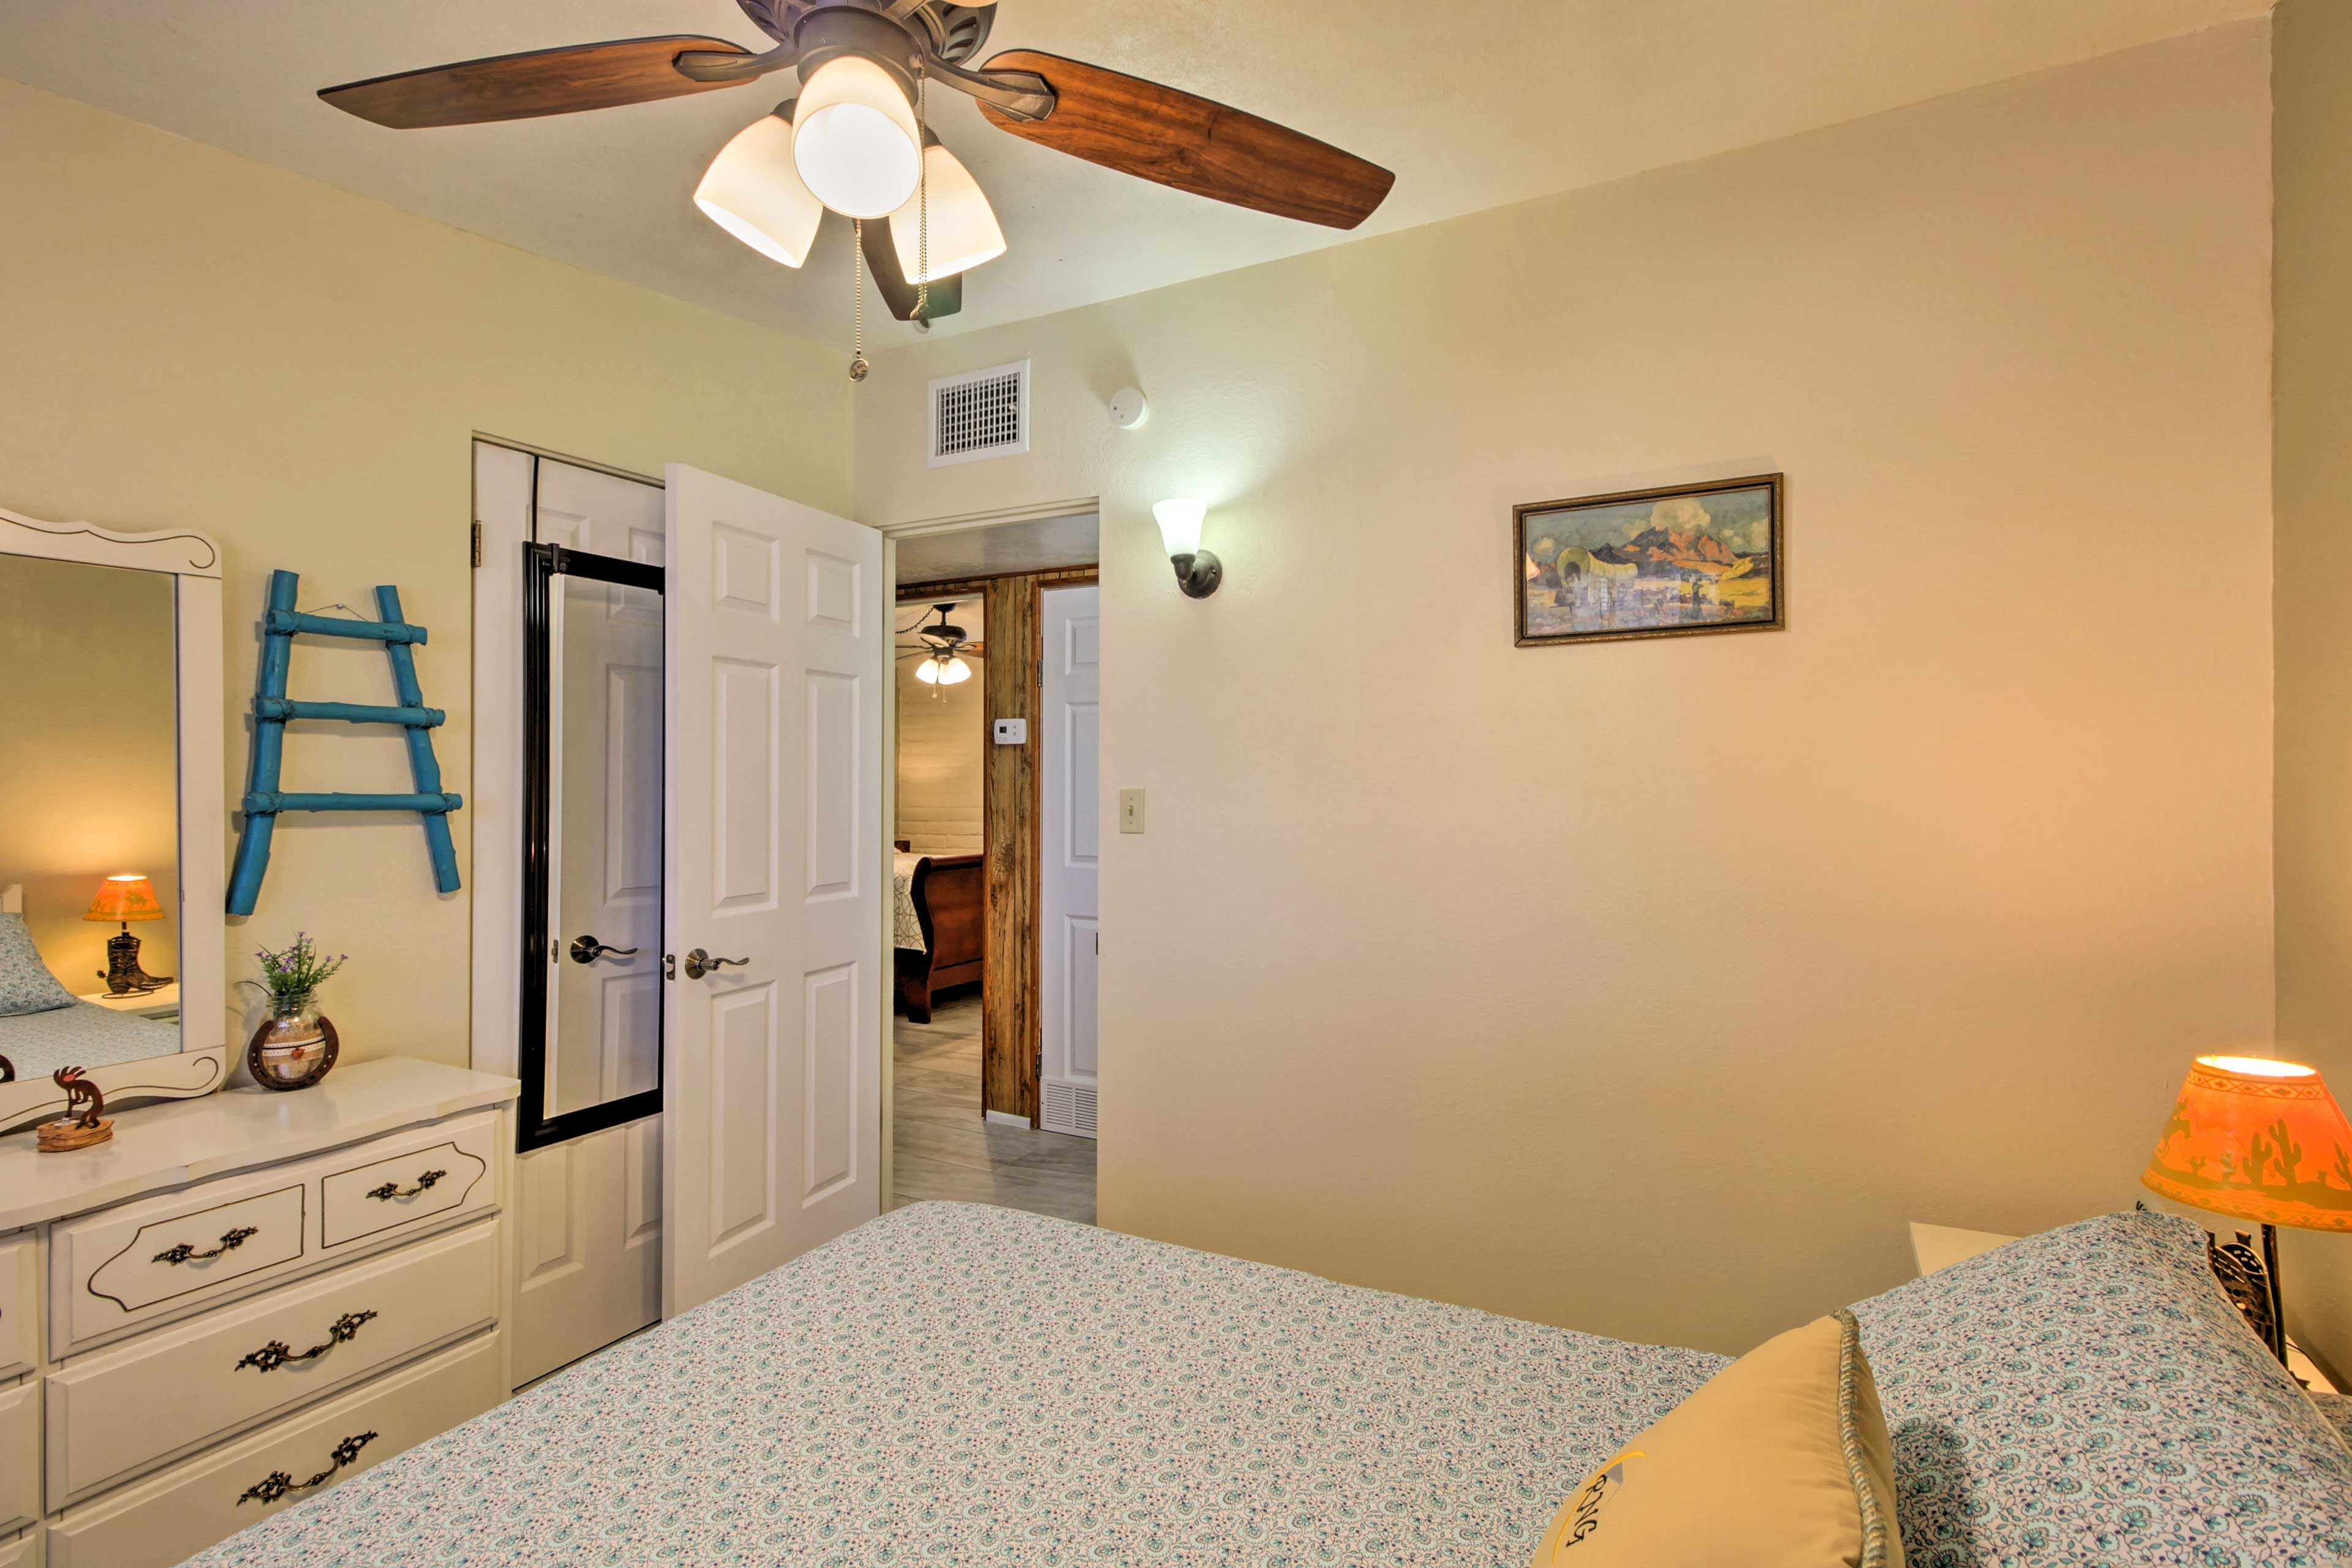 Ceiling fans will keep you cool while you sleep.